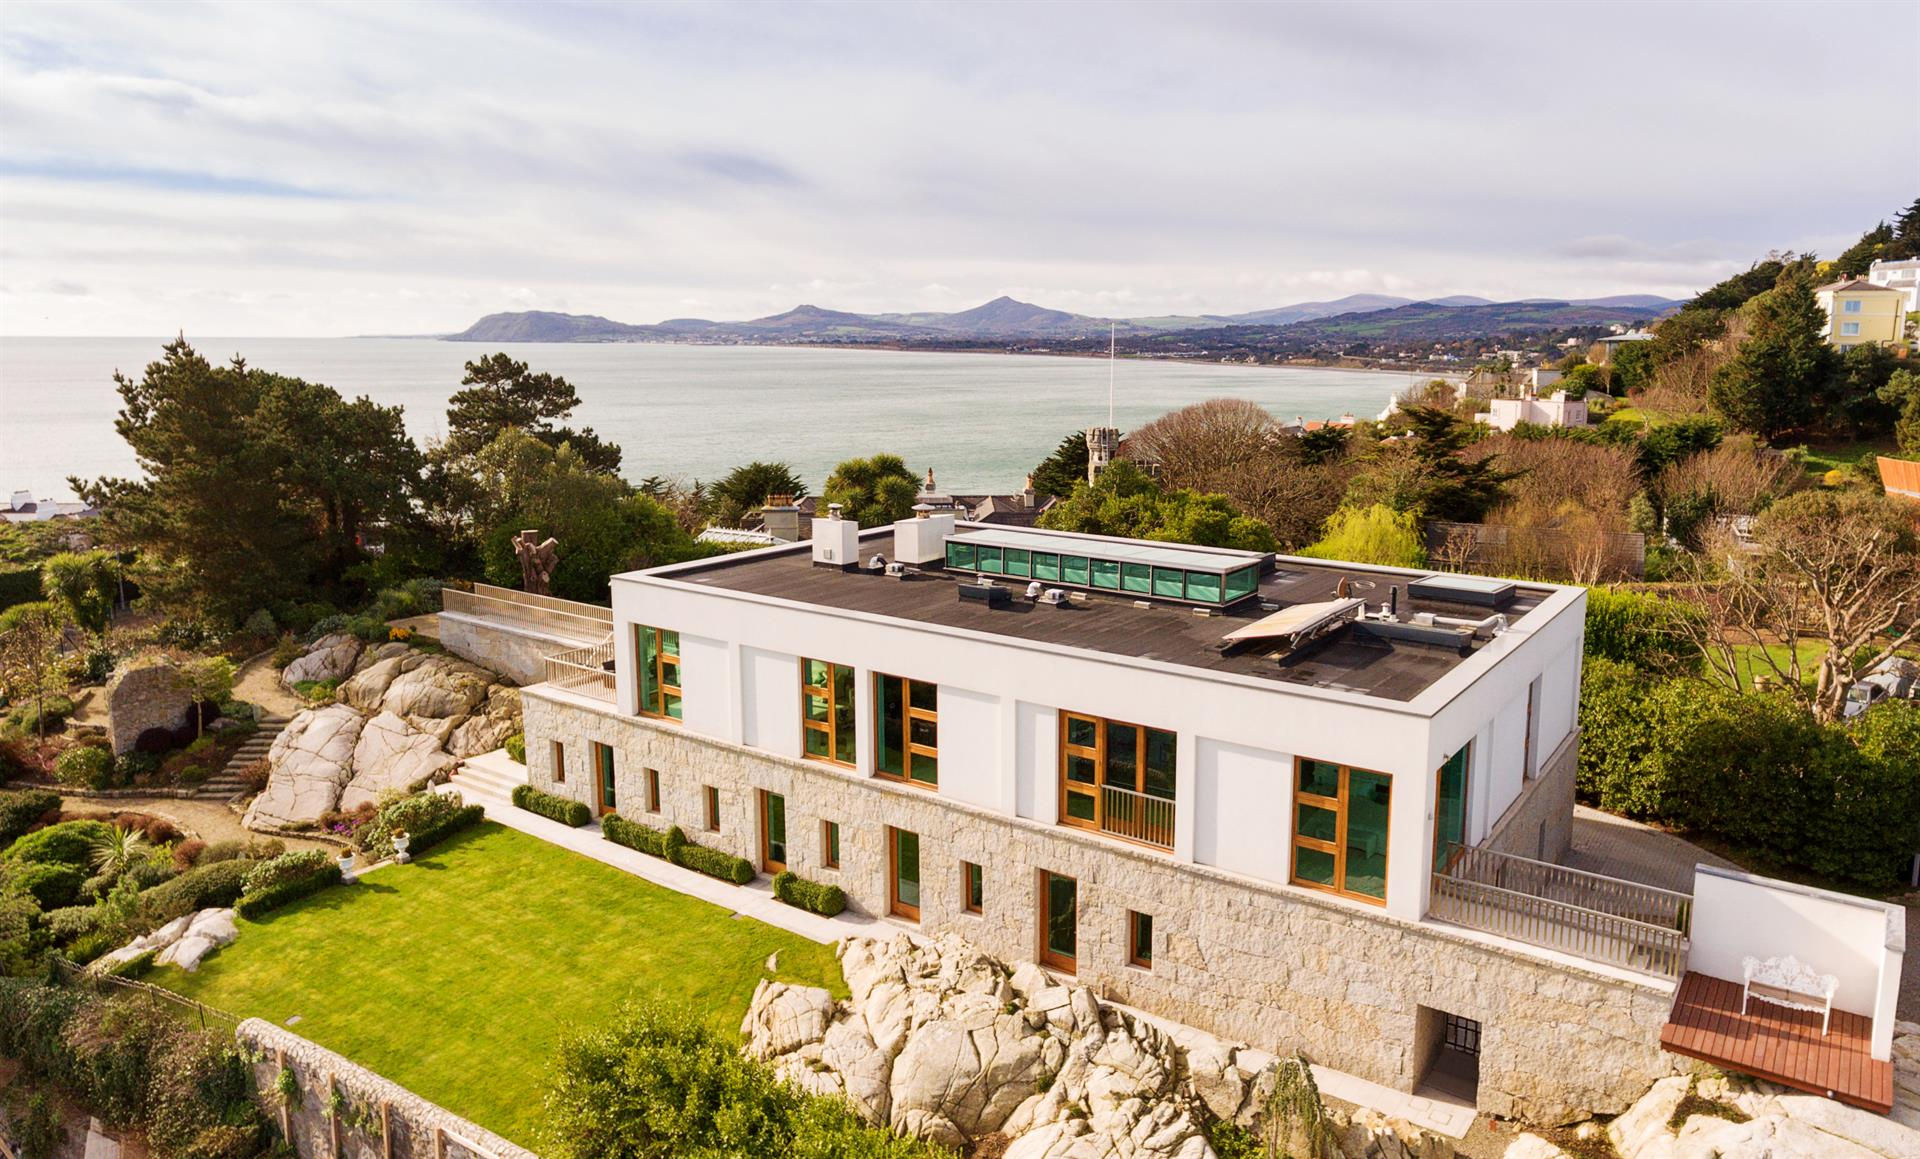 Nice Single Family Home For Sale At Dalkey, Ireland